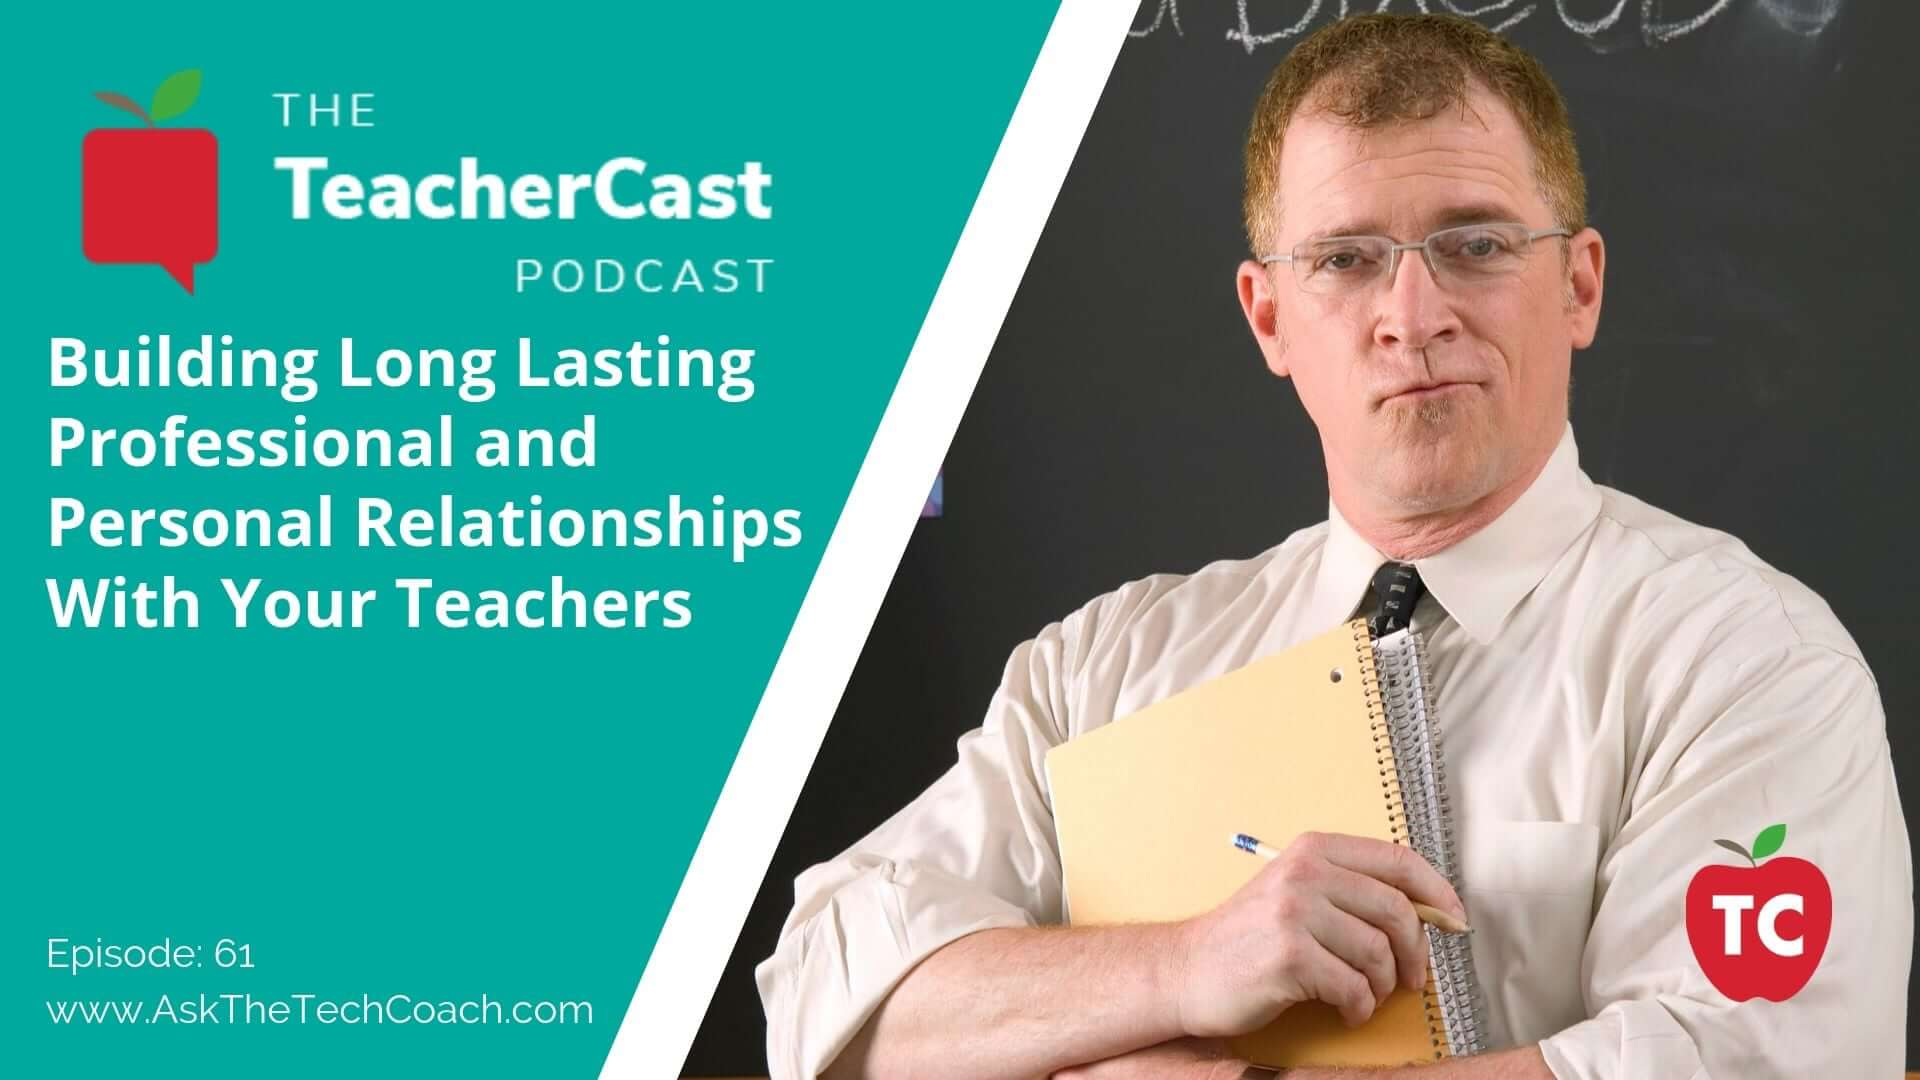 Building Long Lasting Professional and Personal Relationships With Your Teachers